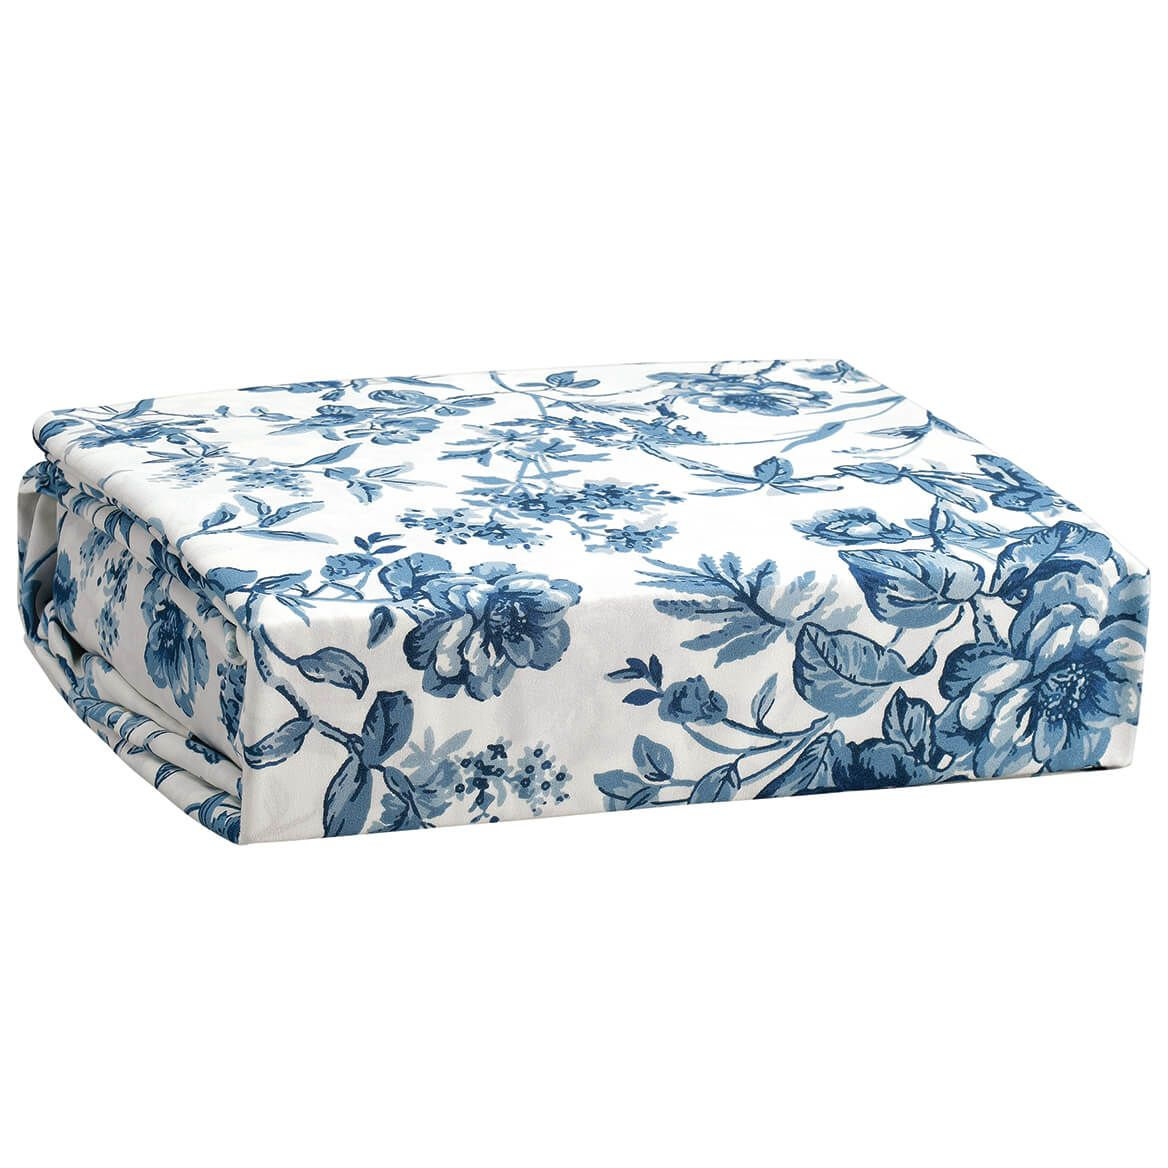 Bed Tite Microfiber Sheets Toile Blue-371236